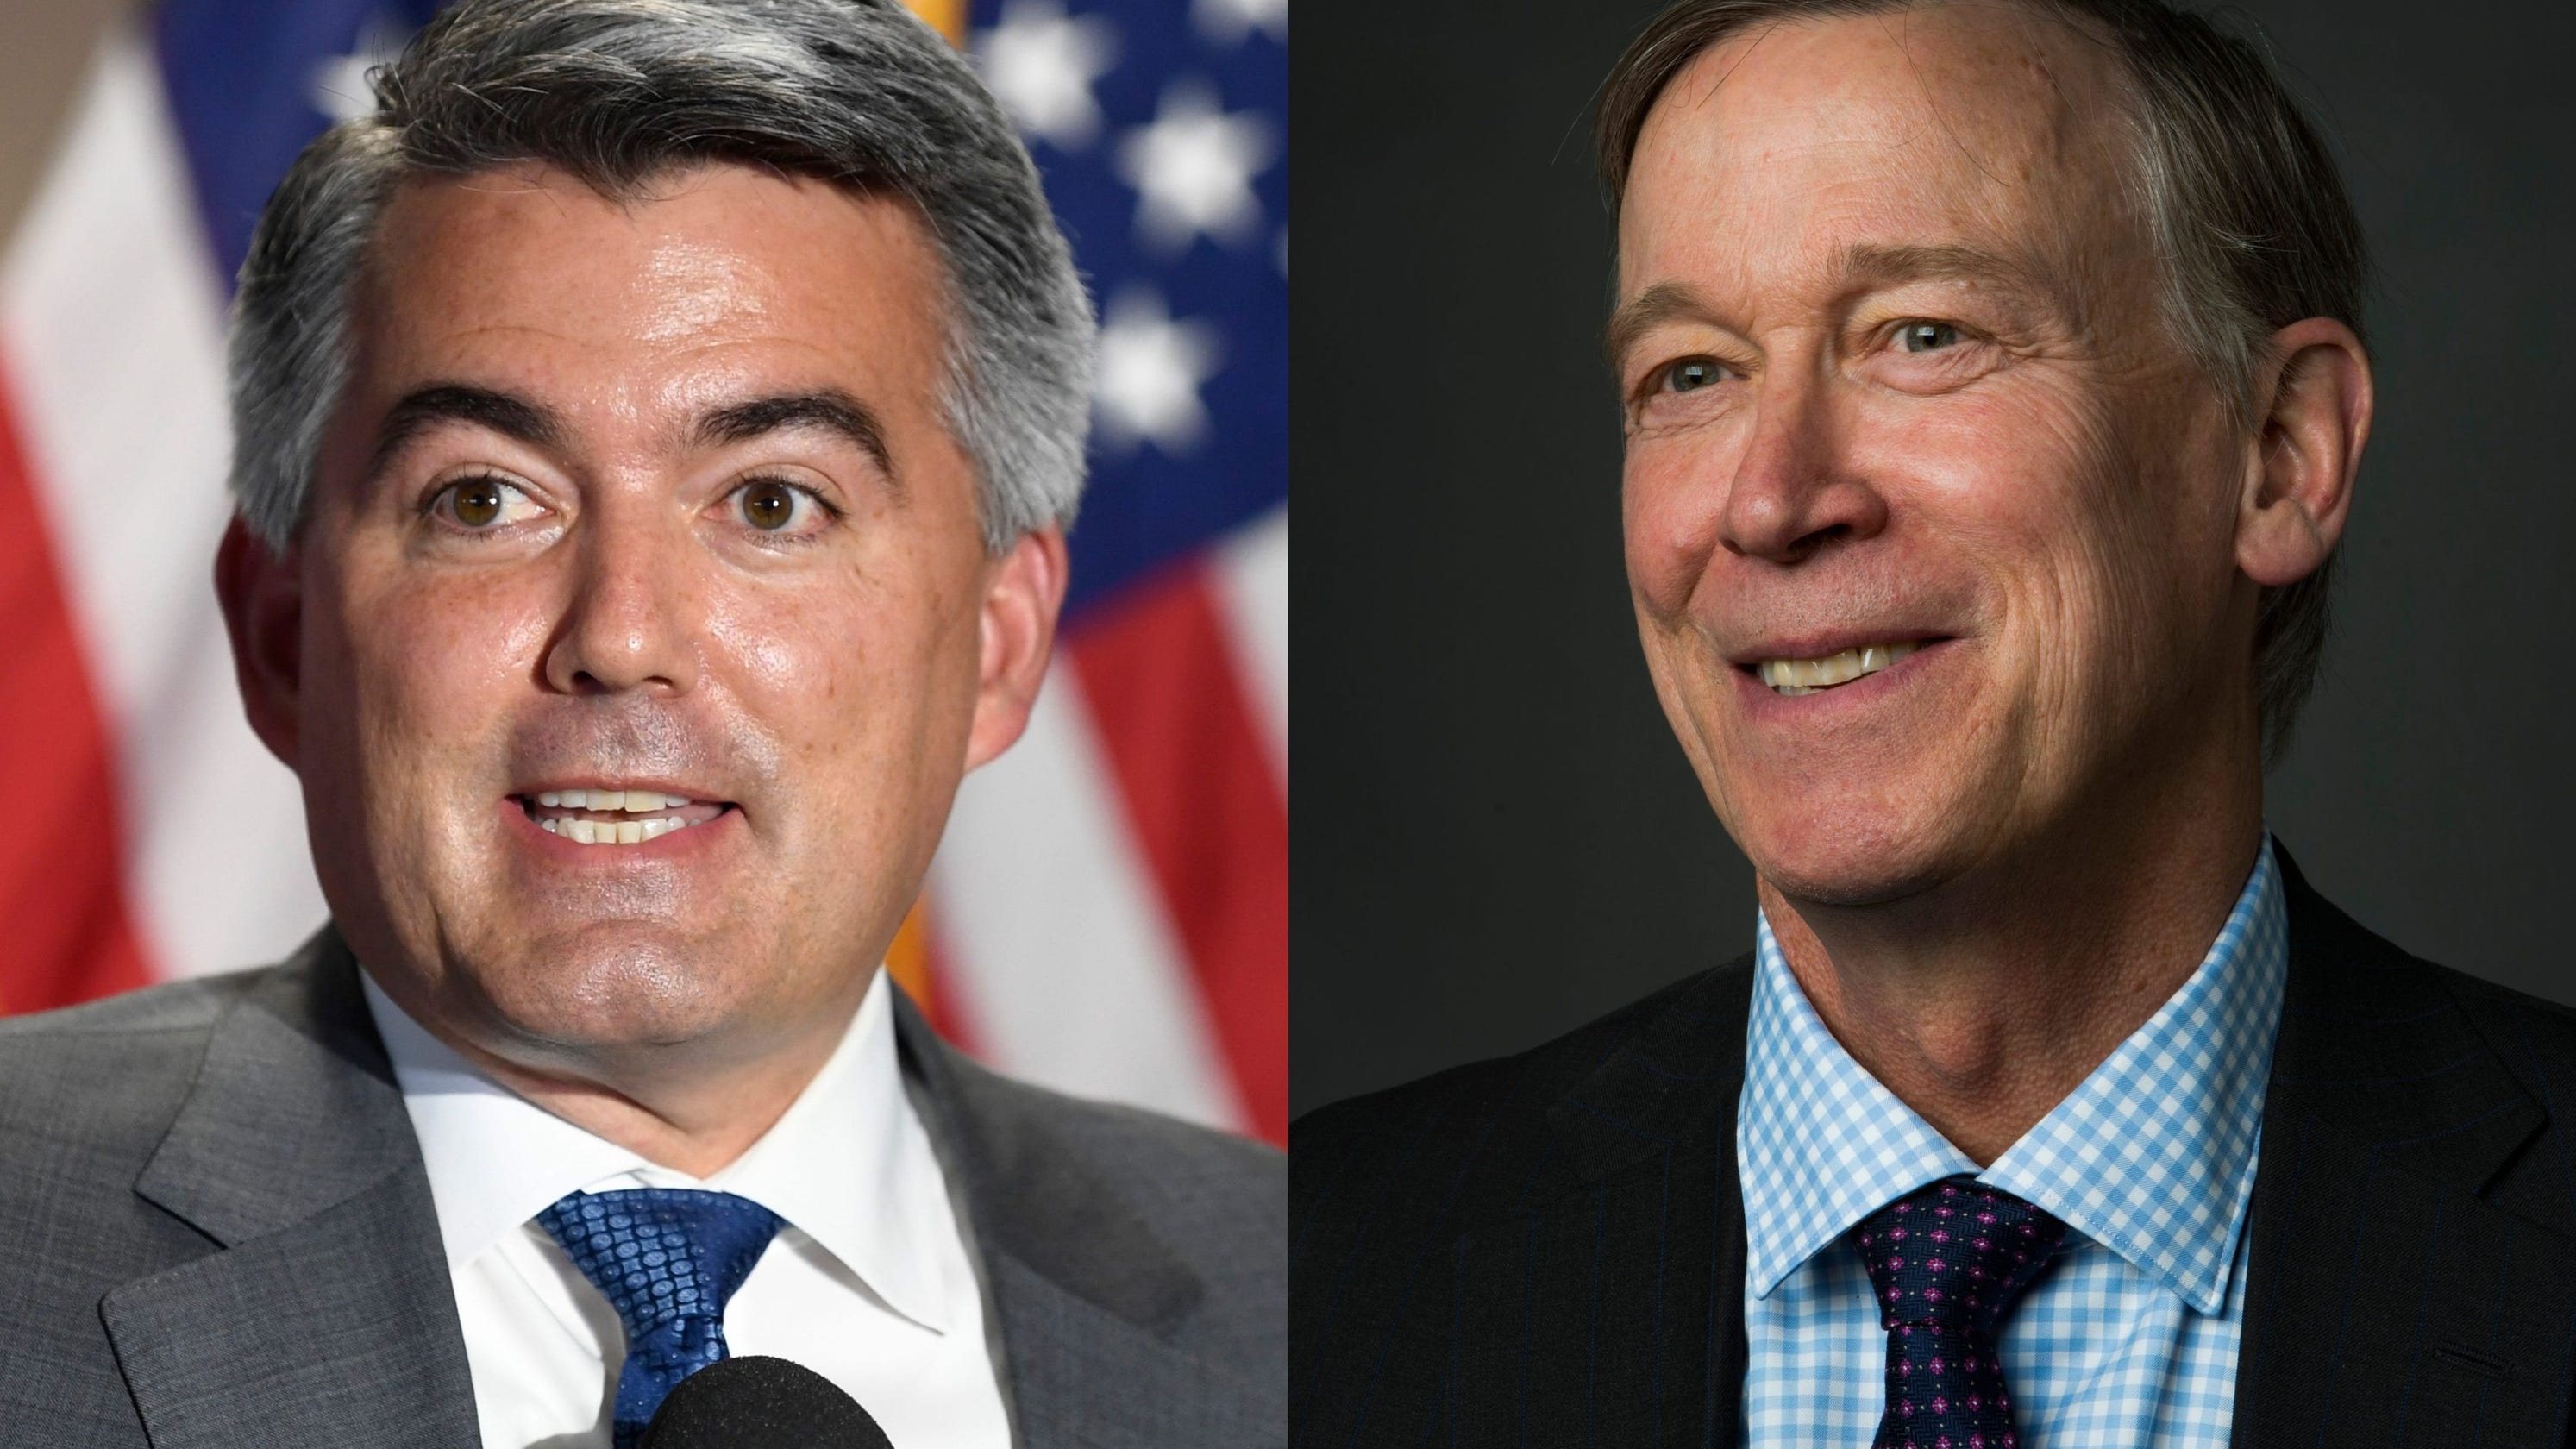 With Colorado losing status as battleground state, Cory Gardner needs more split-ticket voters